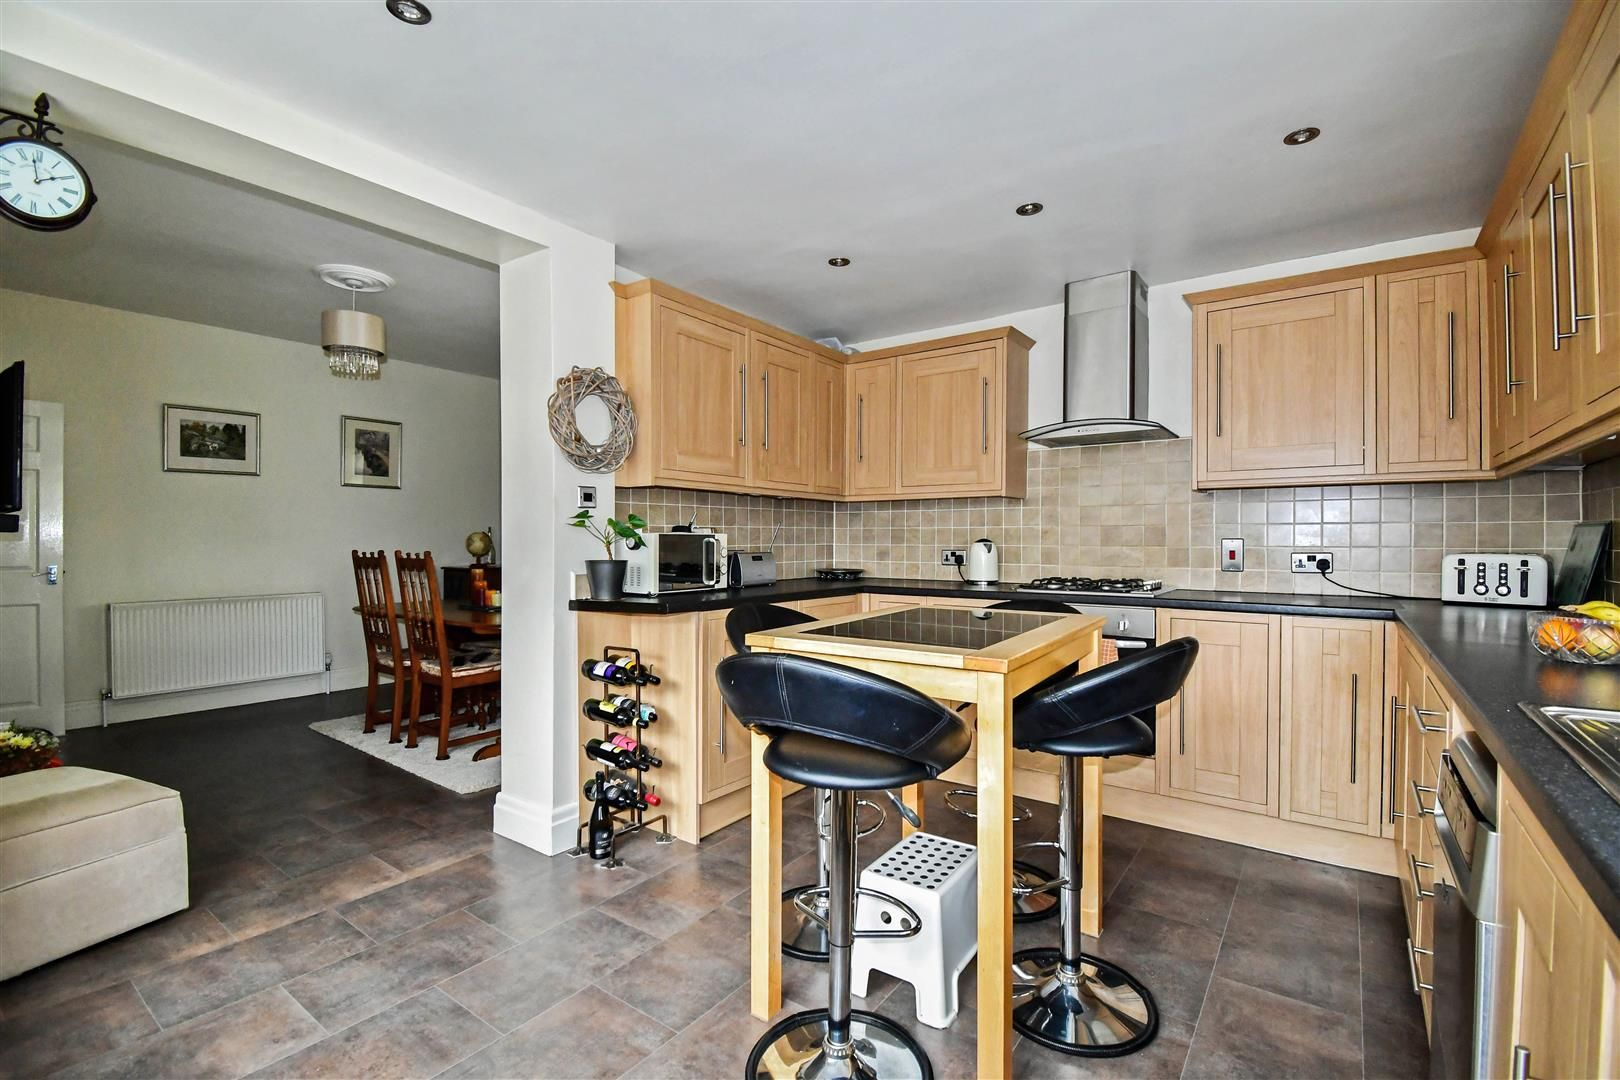 Property photo 1 of 19. Open Plan Dining Room/Kitchen